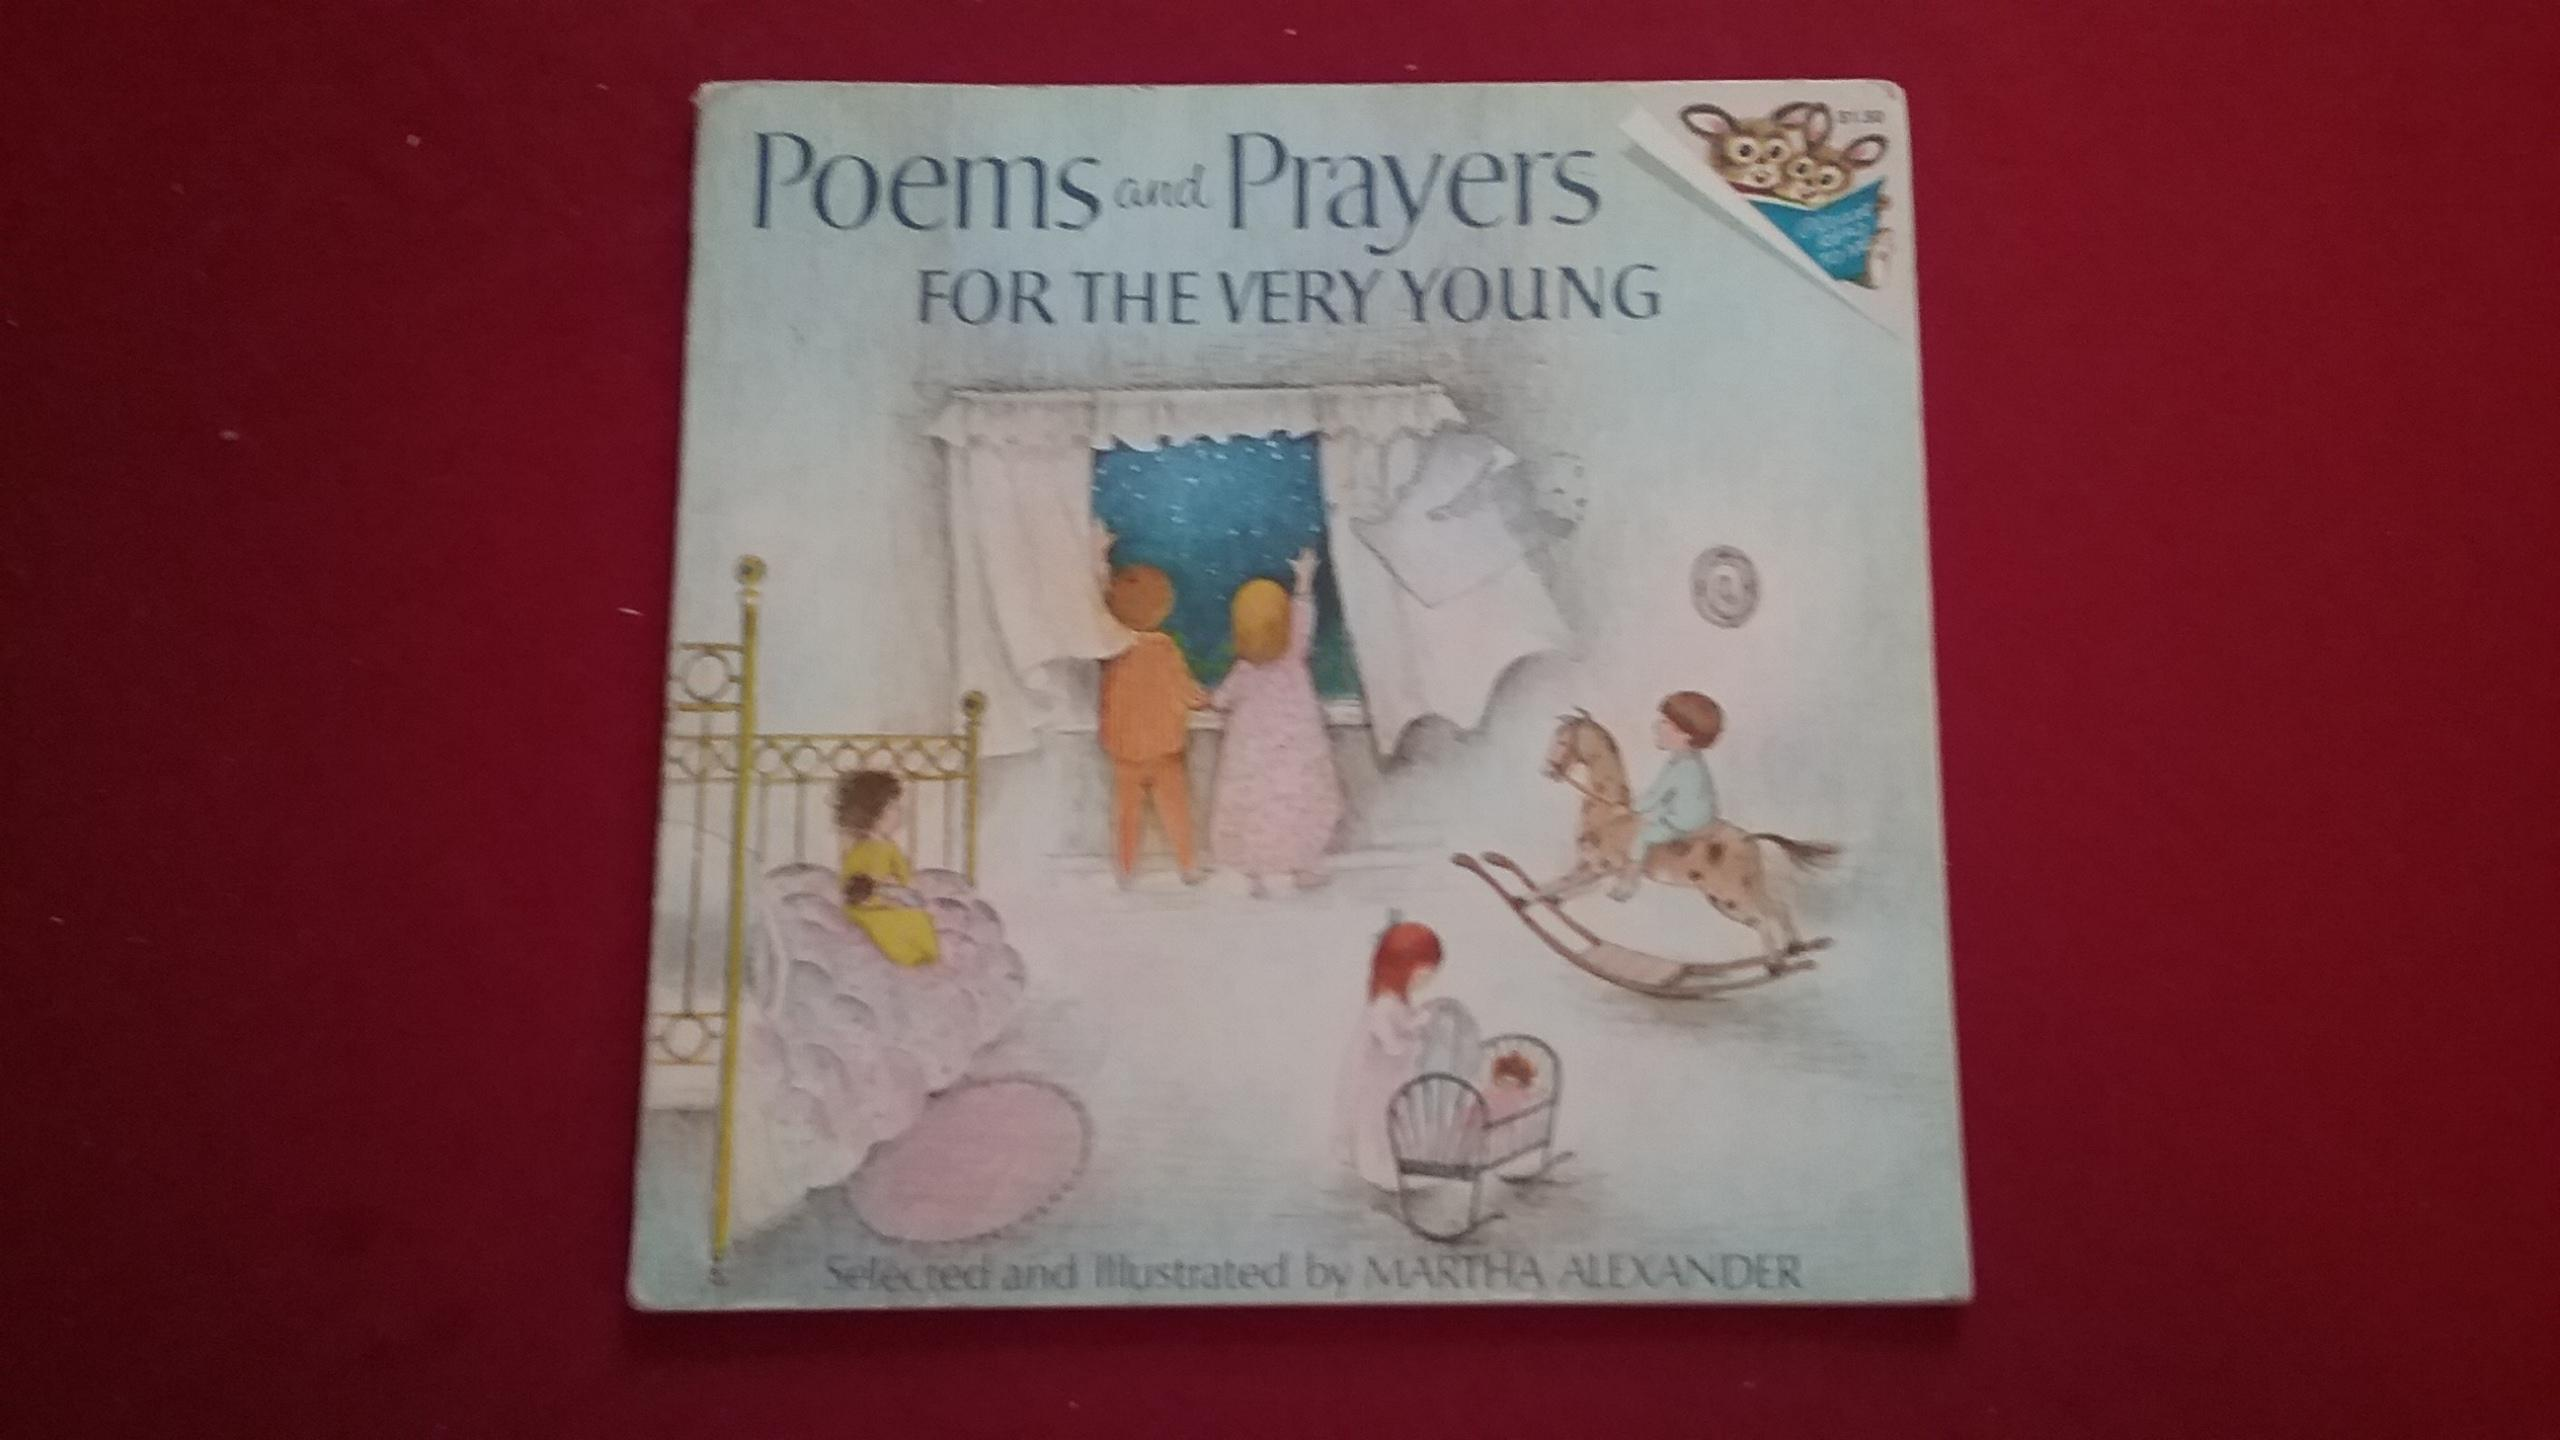 poems and prayers for the very young by alexander martha random